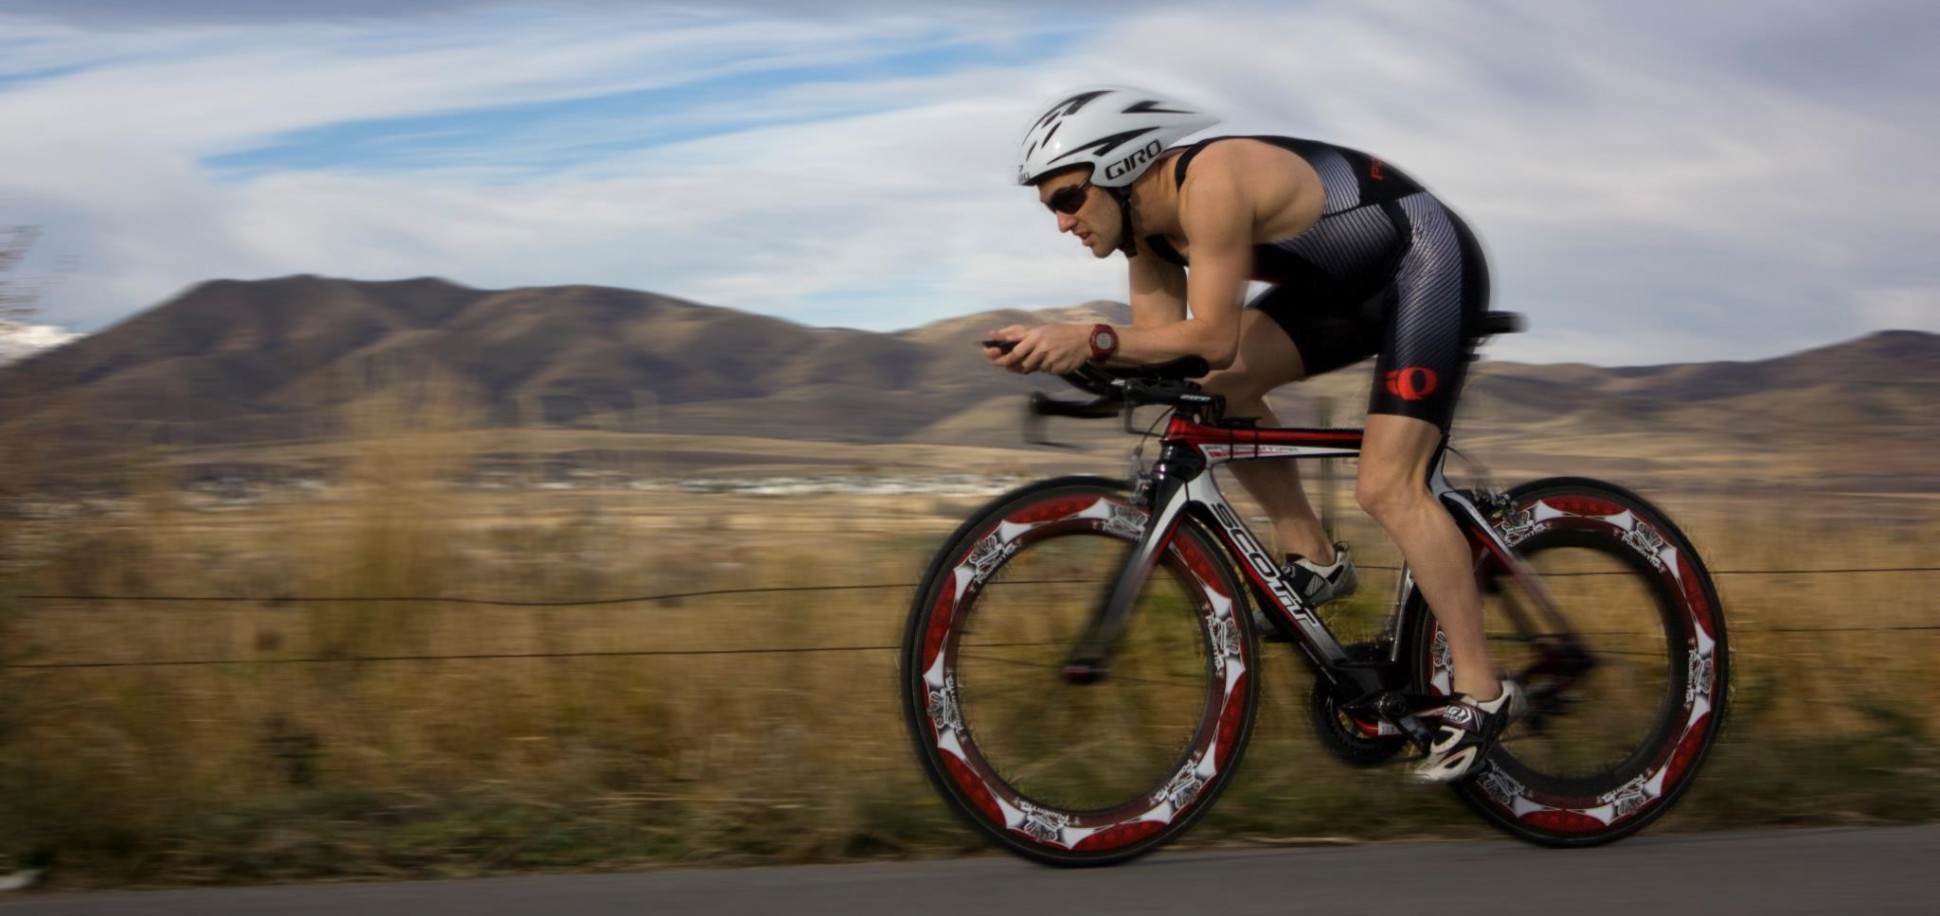 the important factors to achieve peak performance in racing